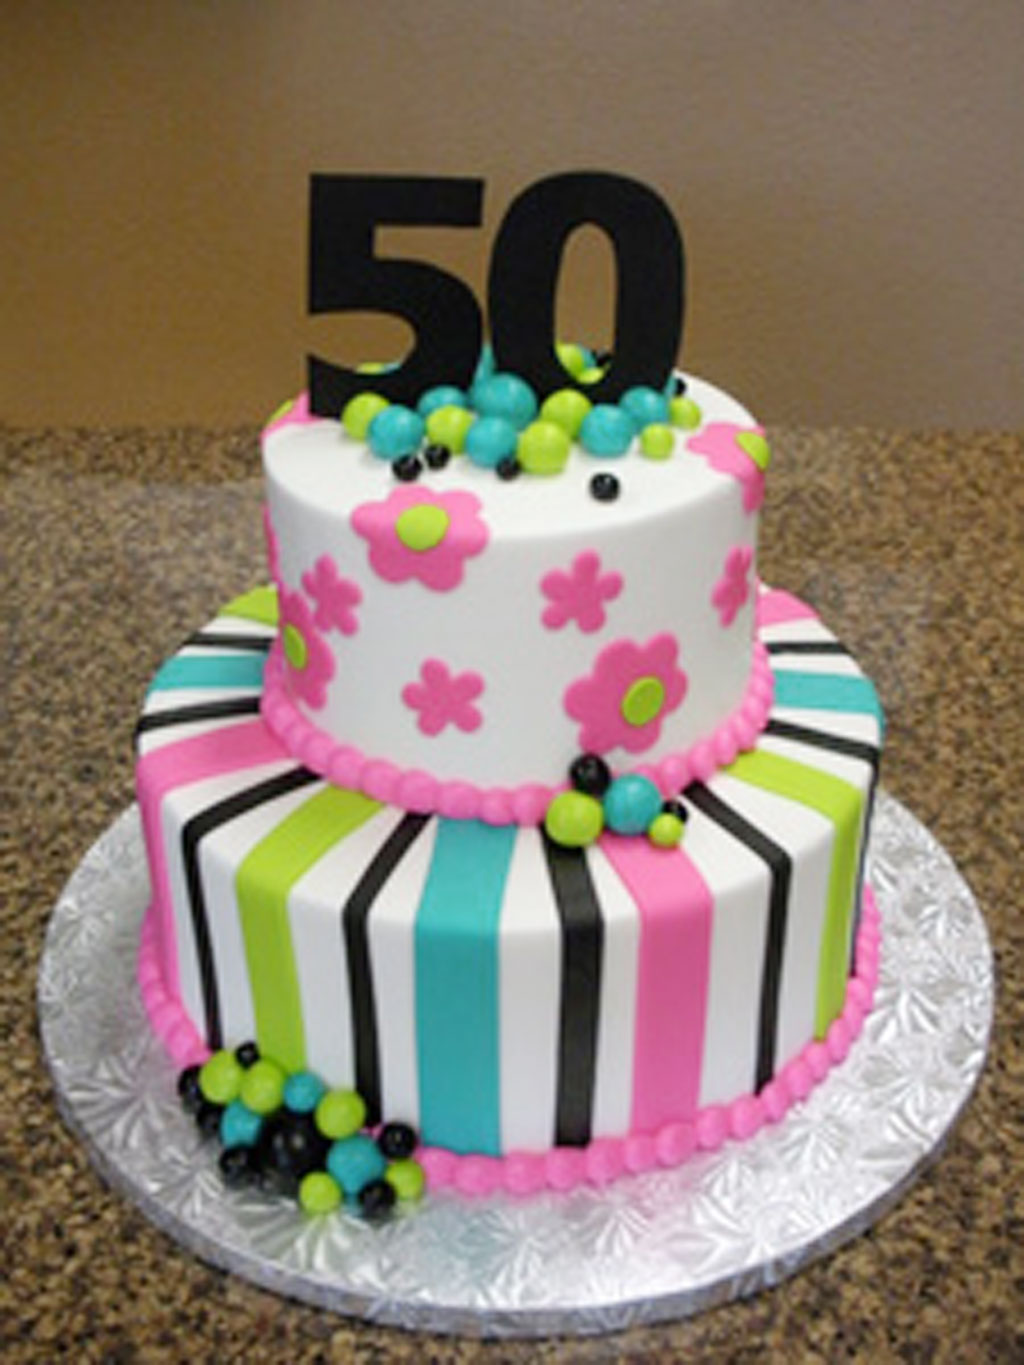 50th Birthday Cakes Pictures For Women Birthday Cake